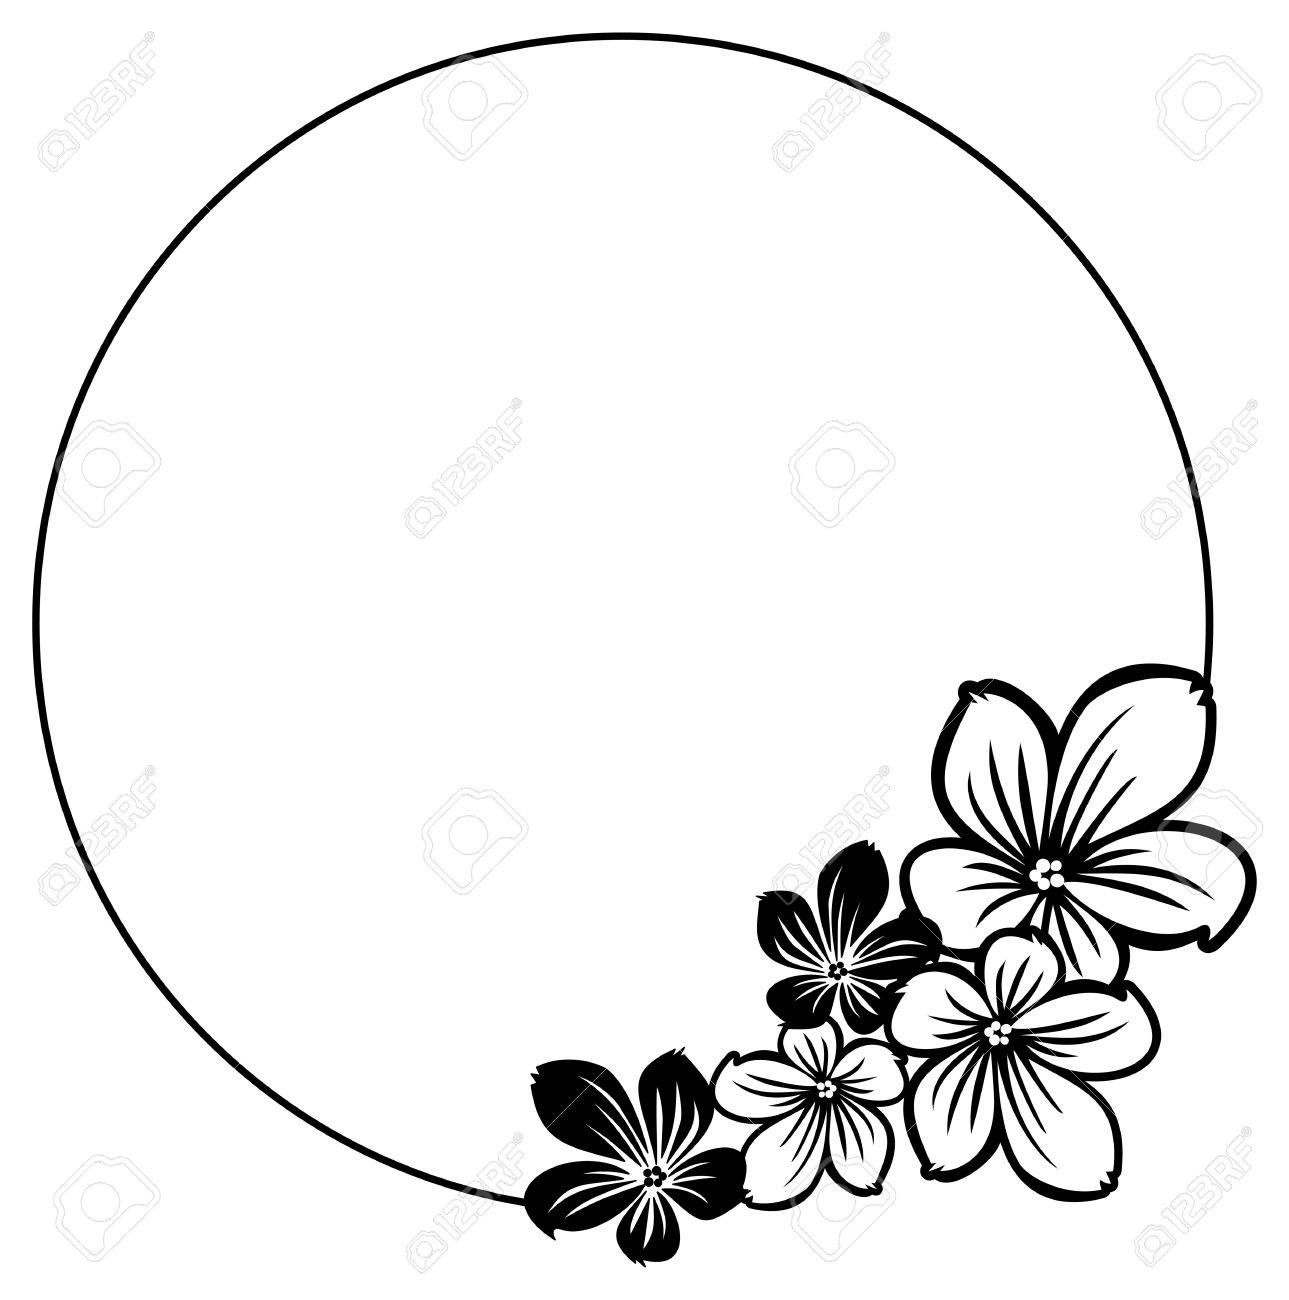 black and white round frame with abstract flowers silhouettes rh 123rf com tropical flower silhouette vector lotus flower silhouette vector